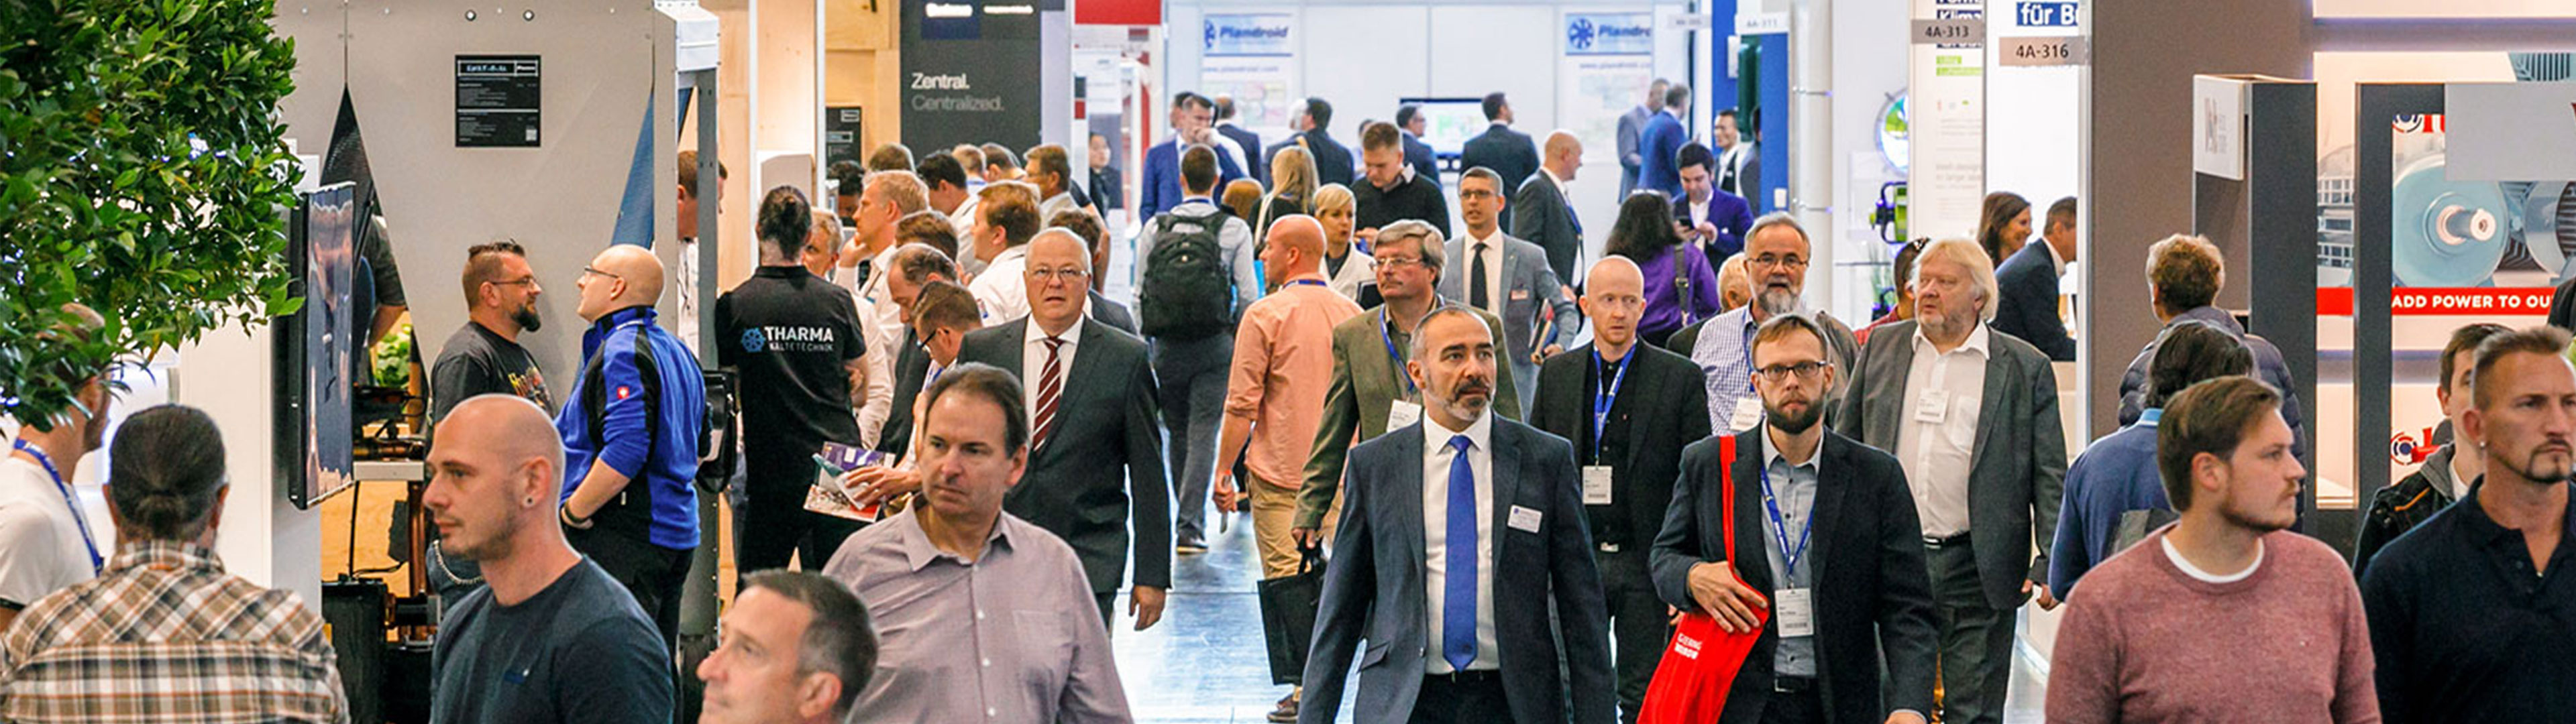 Visitors walk in the hall aisle between exhibition stands at Chillventa.